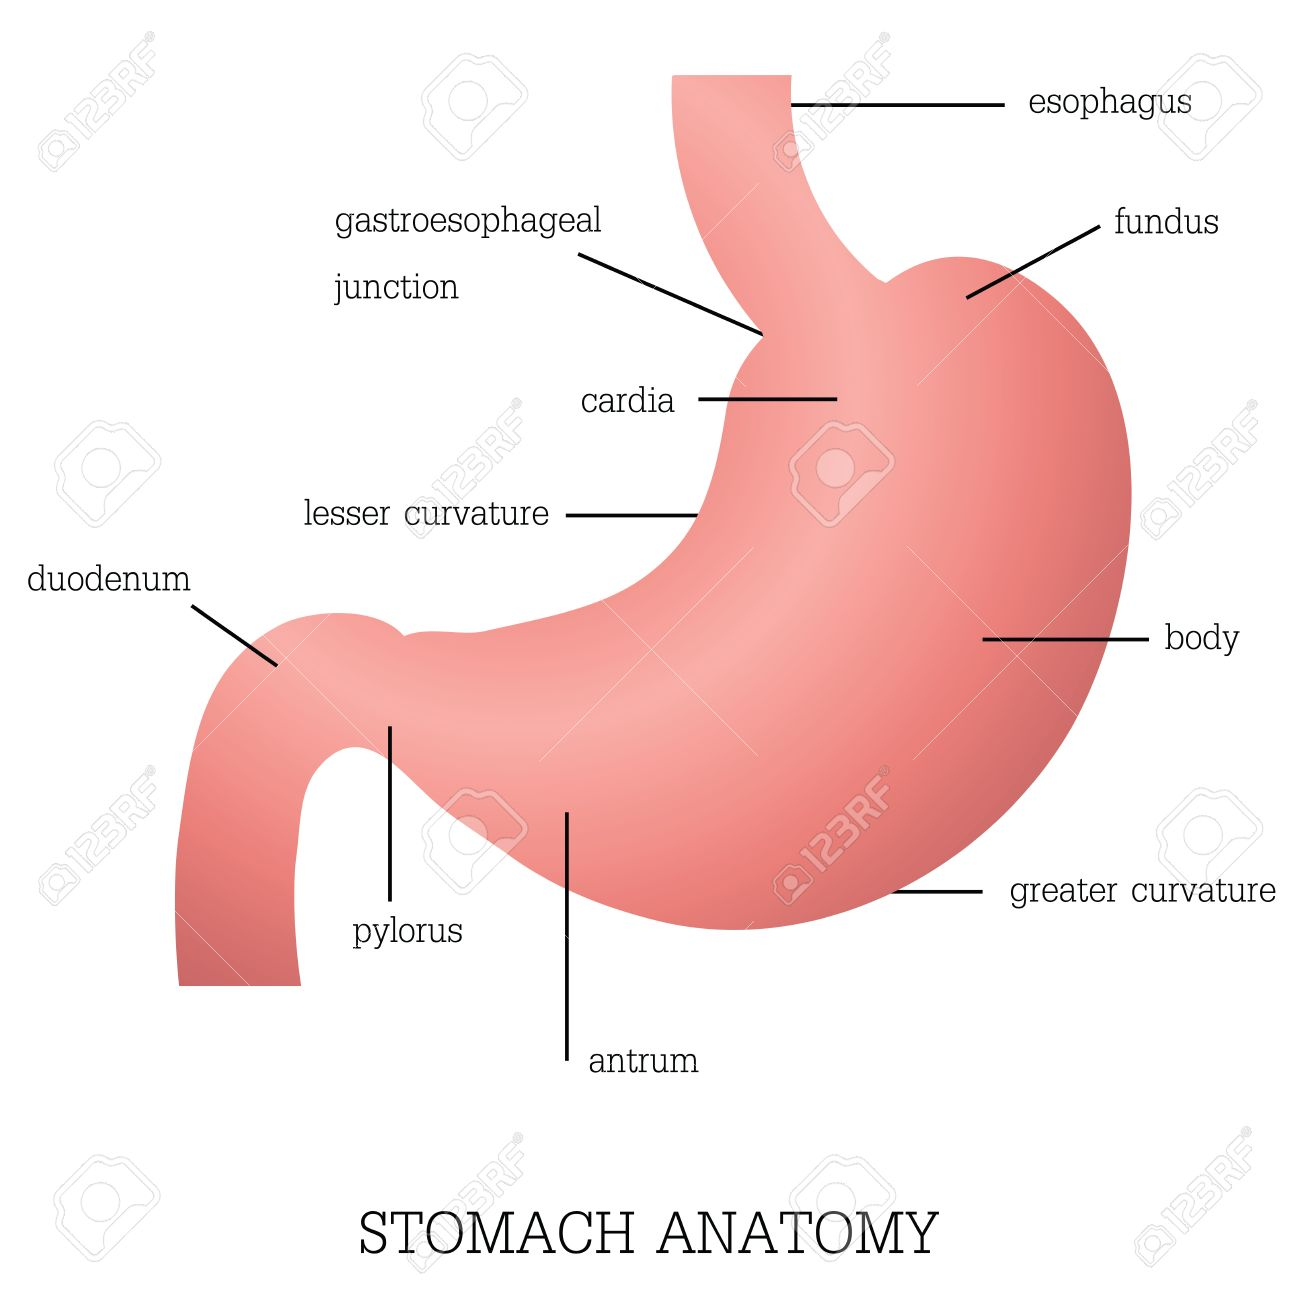 Structure and function of stomach anatomy system isolated on structure and function of stomach anatomy system isolated on white background human anatomy education vector ccuart Image collections